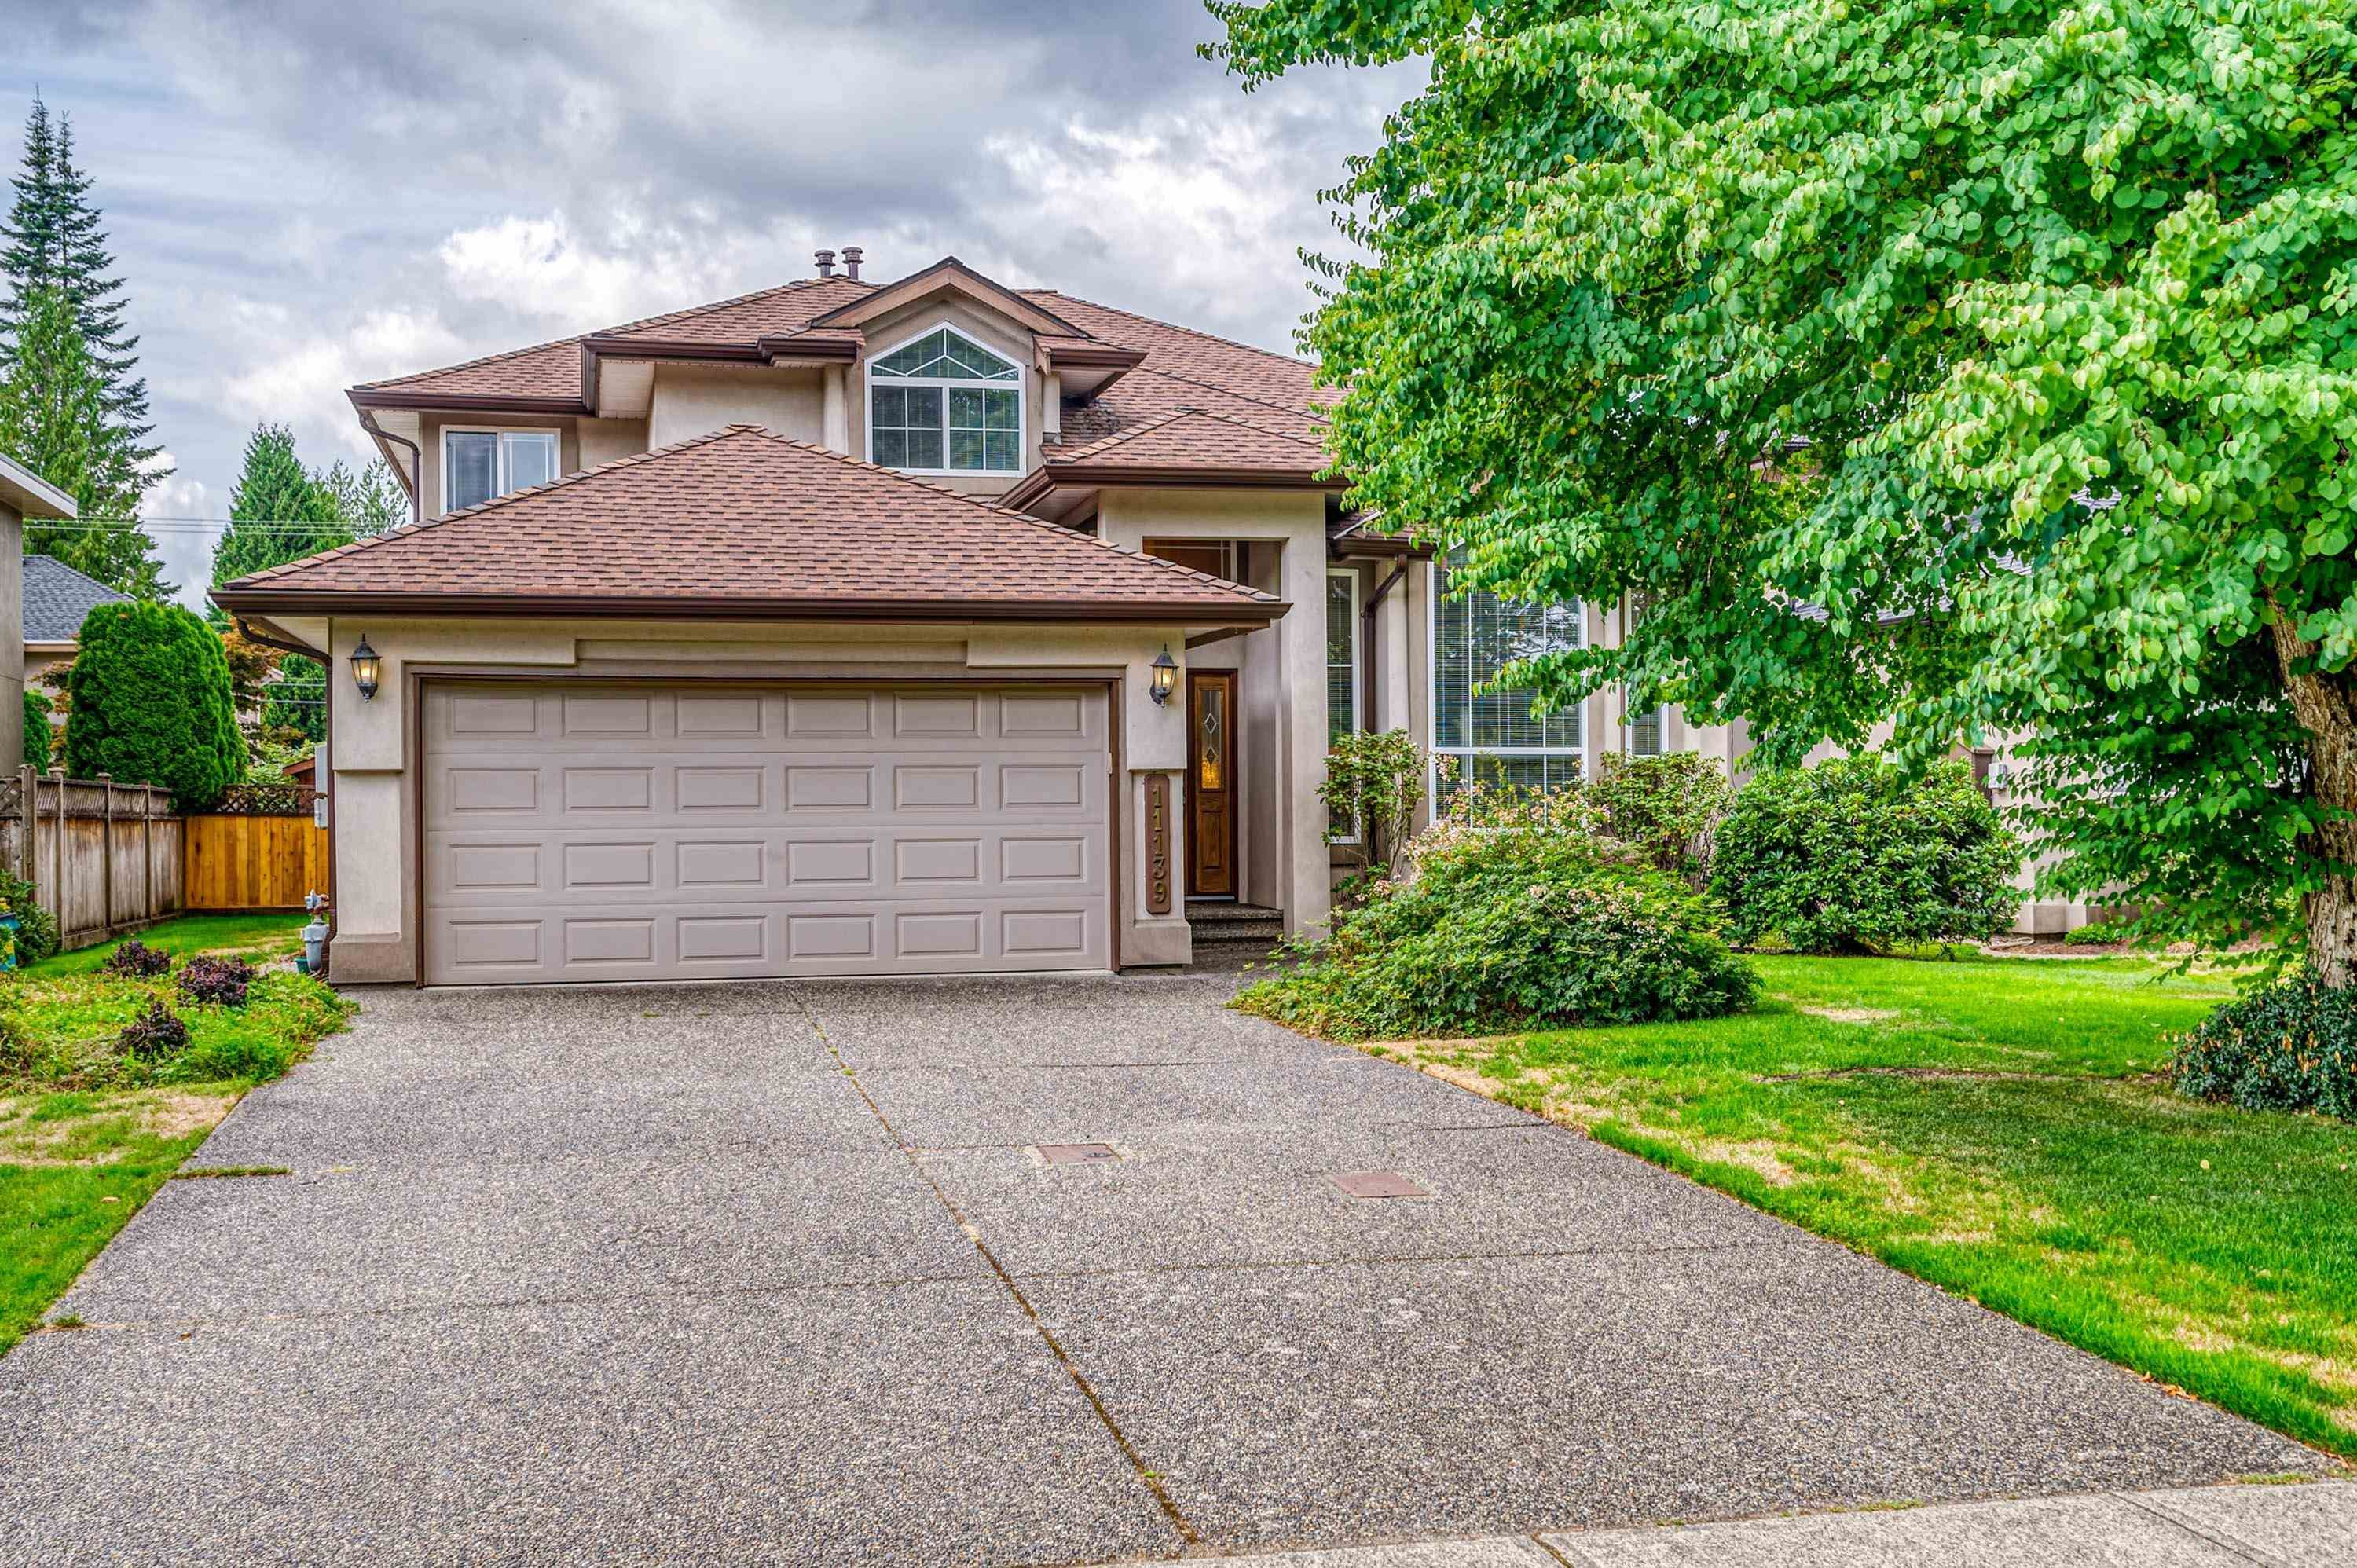 """Main Photo: 11139 160A Street in Surrey: Fraser Heights House for sale in """"uplands/destiny ridge"""" (North Surrey)  : MLS®# R2611869"""